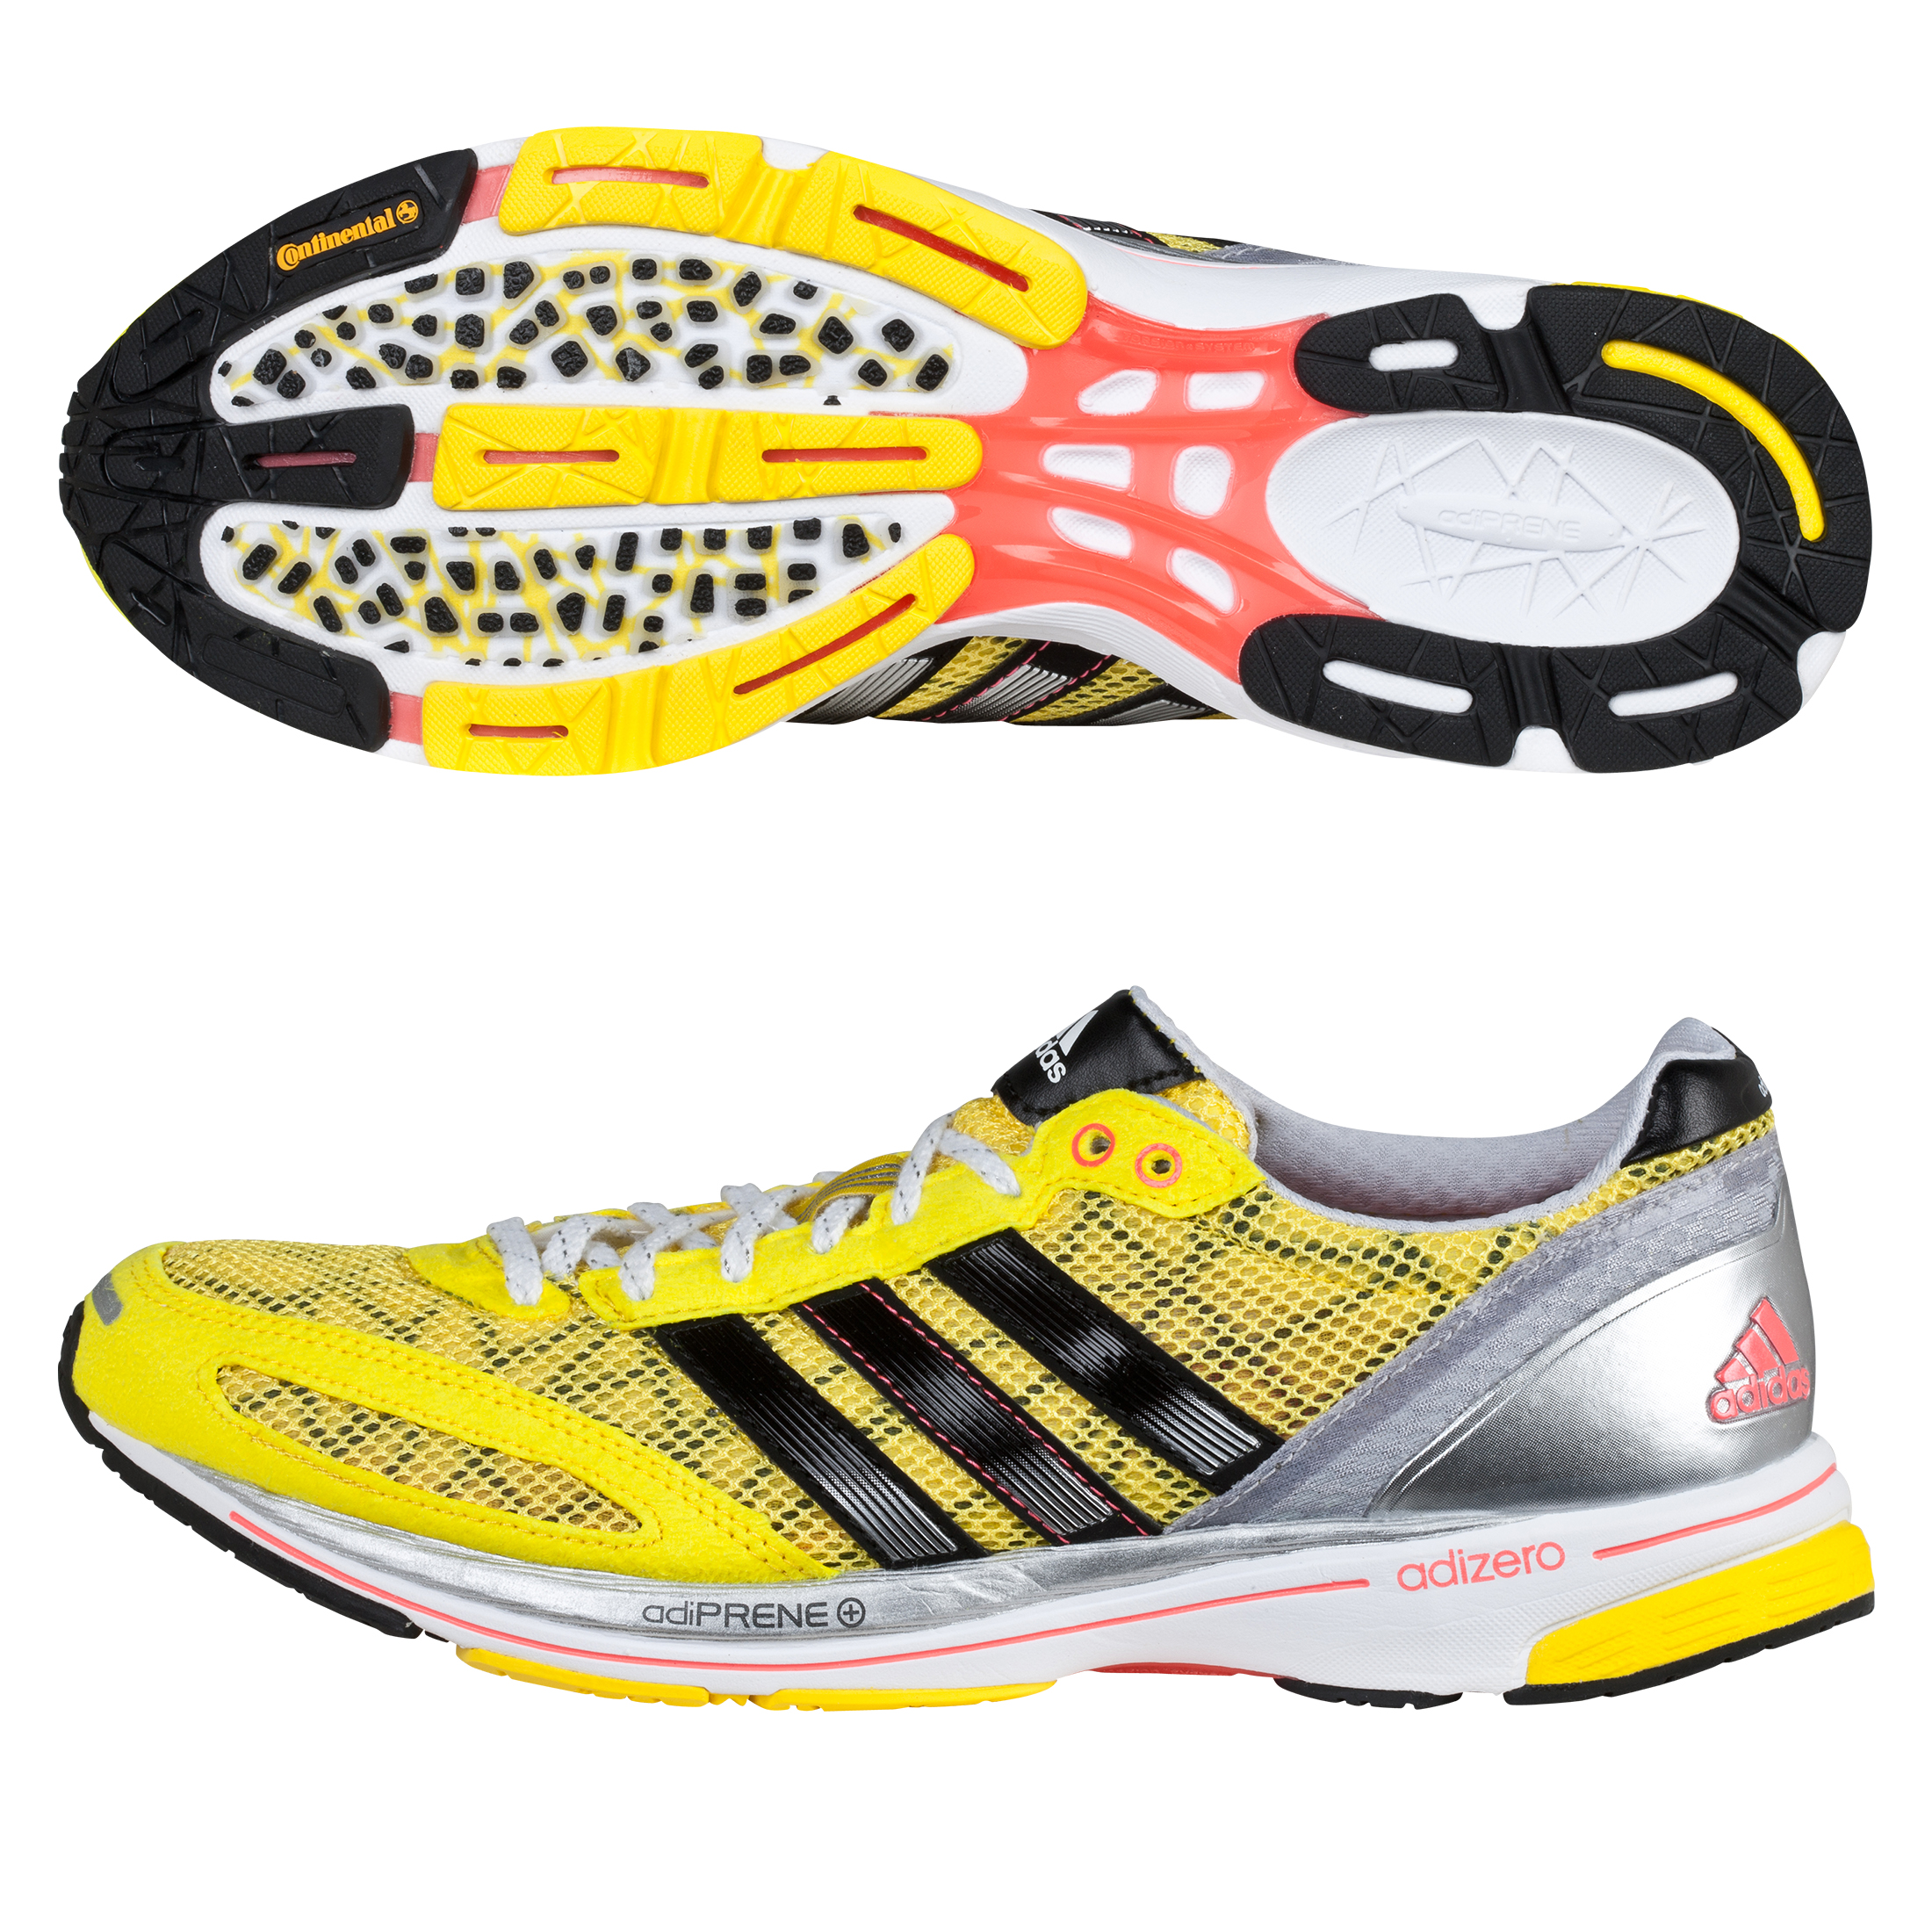 Adidas Adizero Adios 2 Trainer - Womens